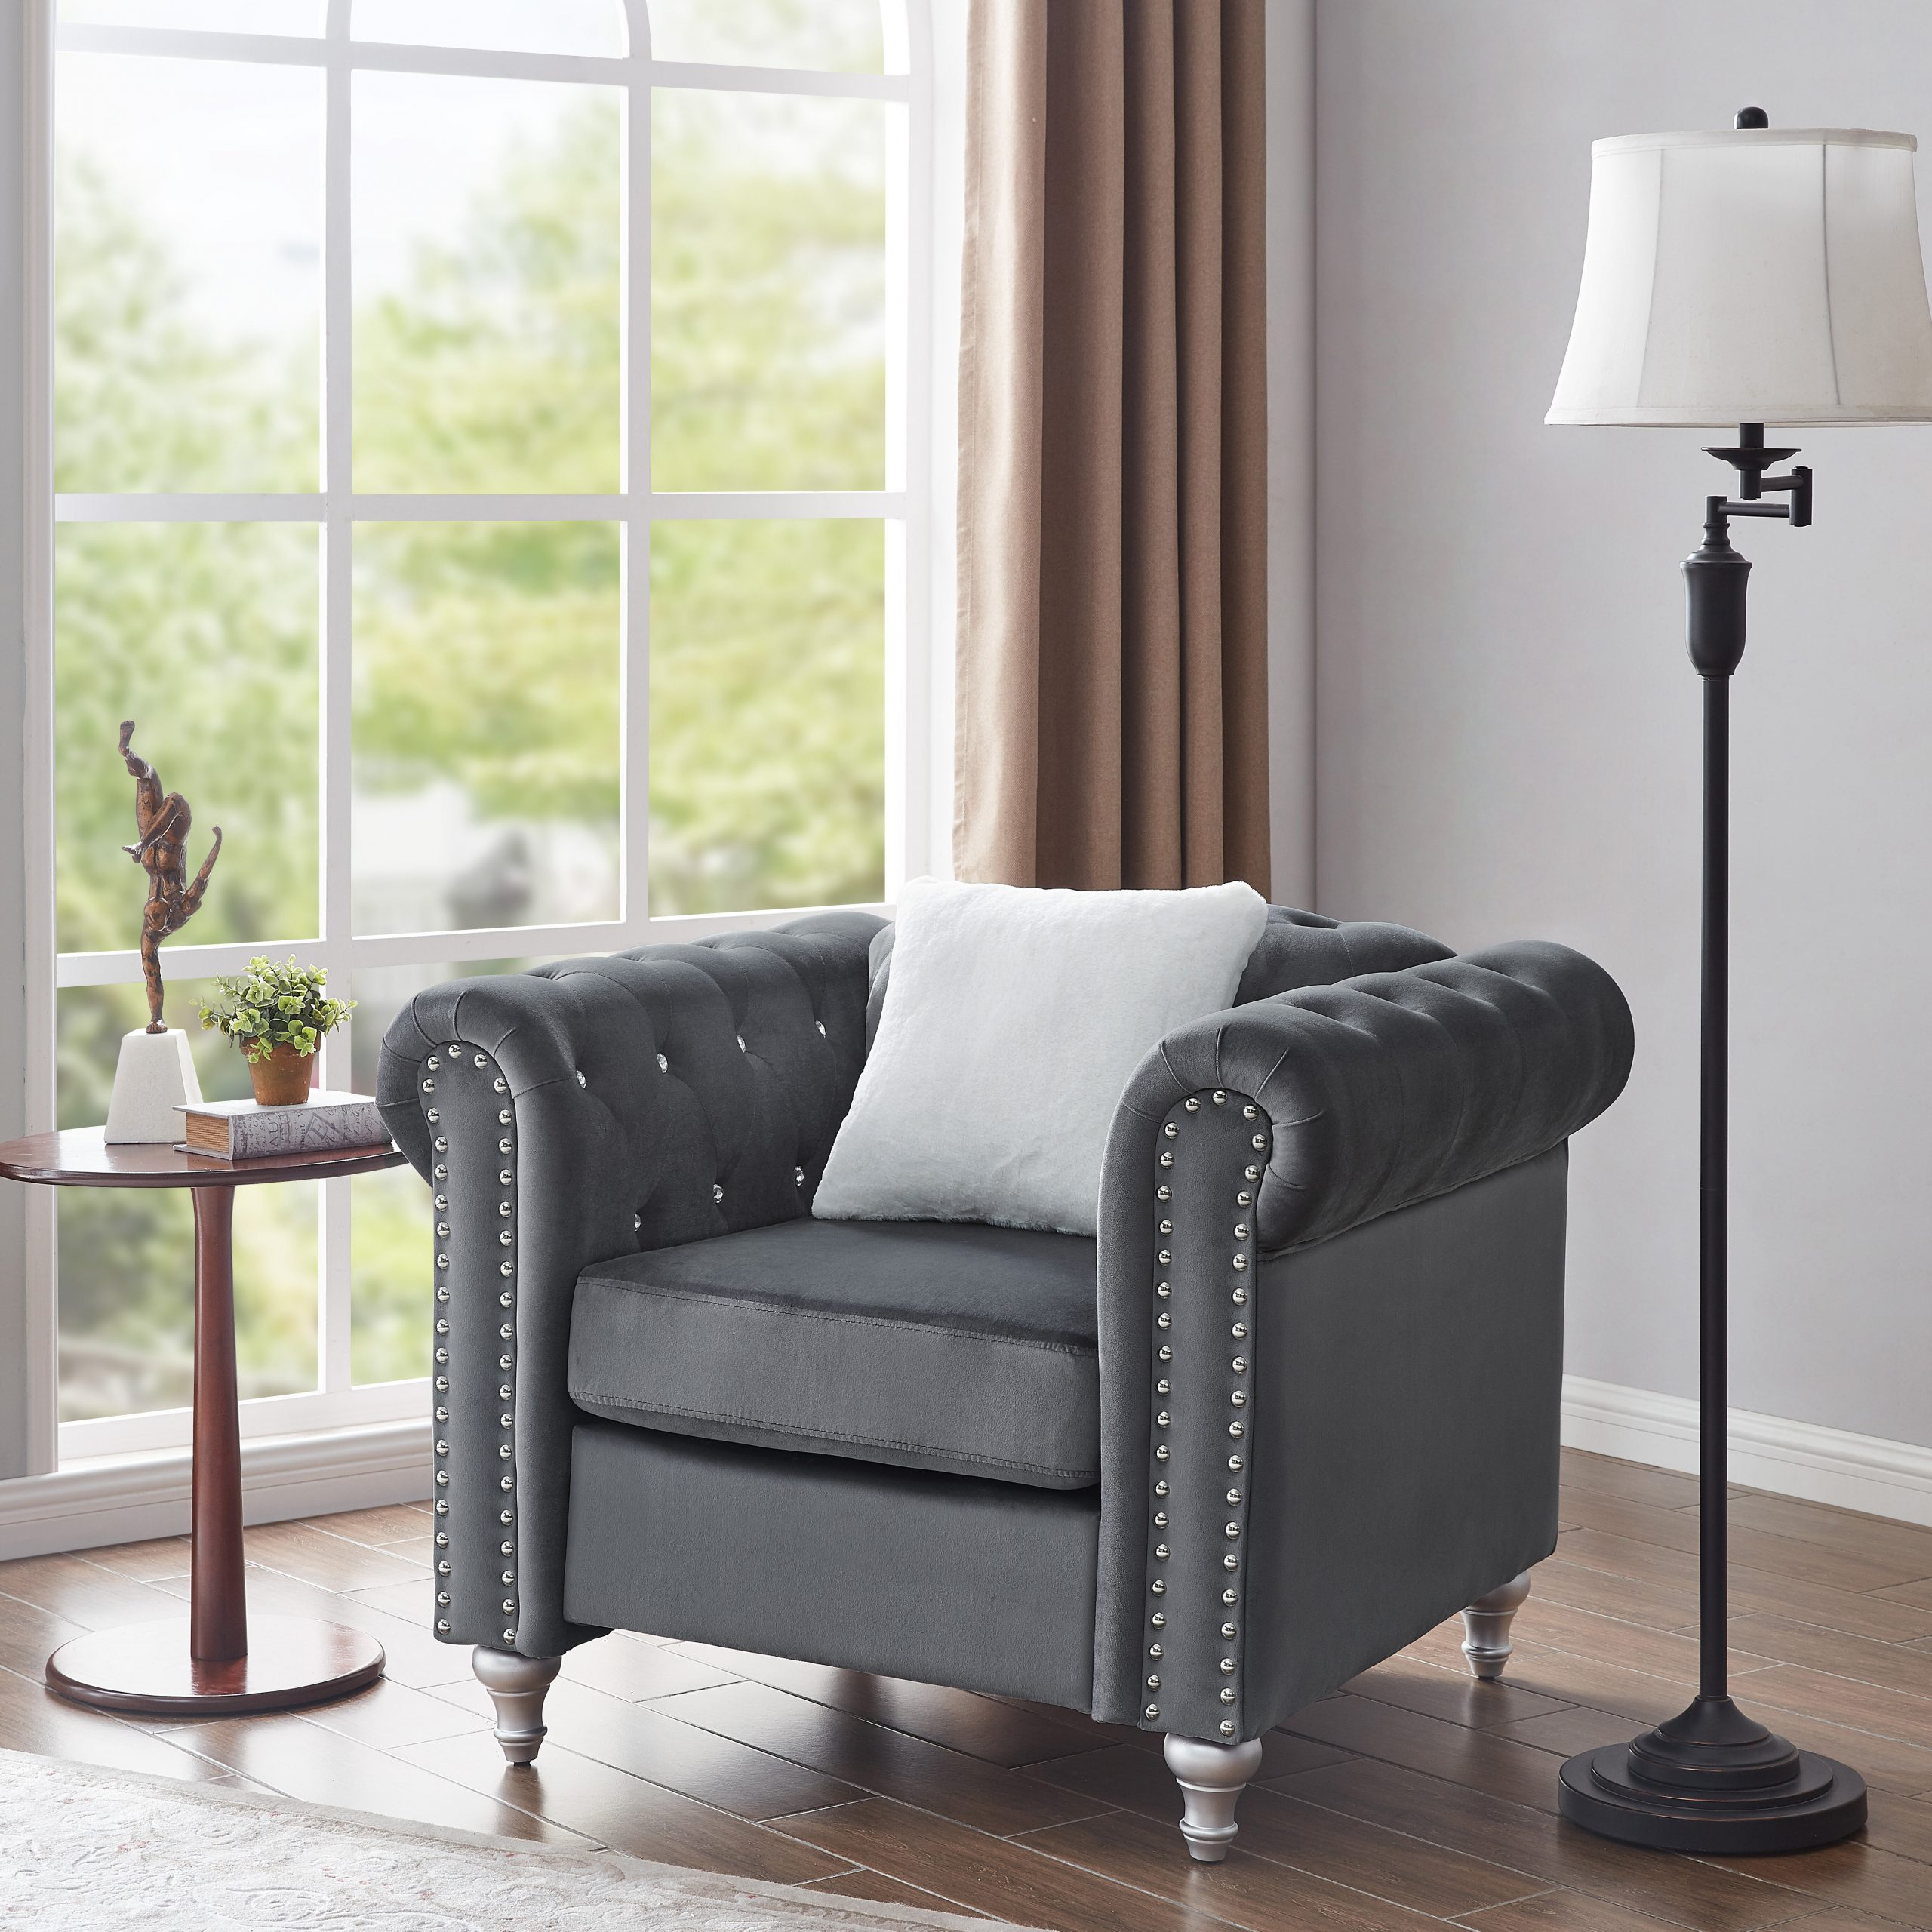 Lassiter Tufted Chesterfield Chair Throughout Starks Tufted Fabric Chesterfield Chair And Ottoman Sets (View 2 of 15)